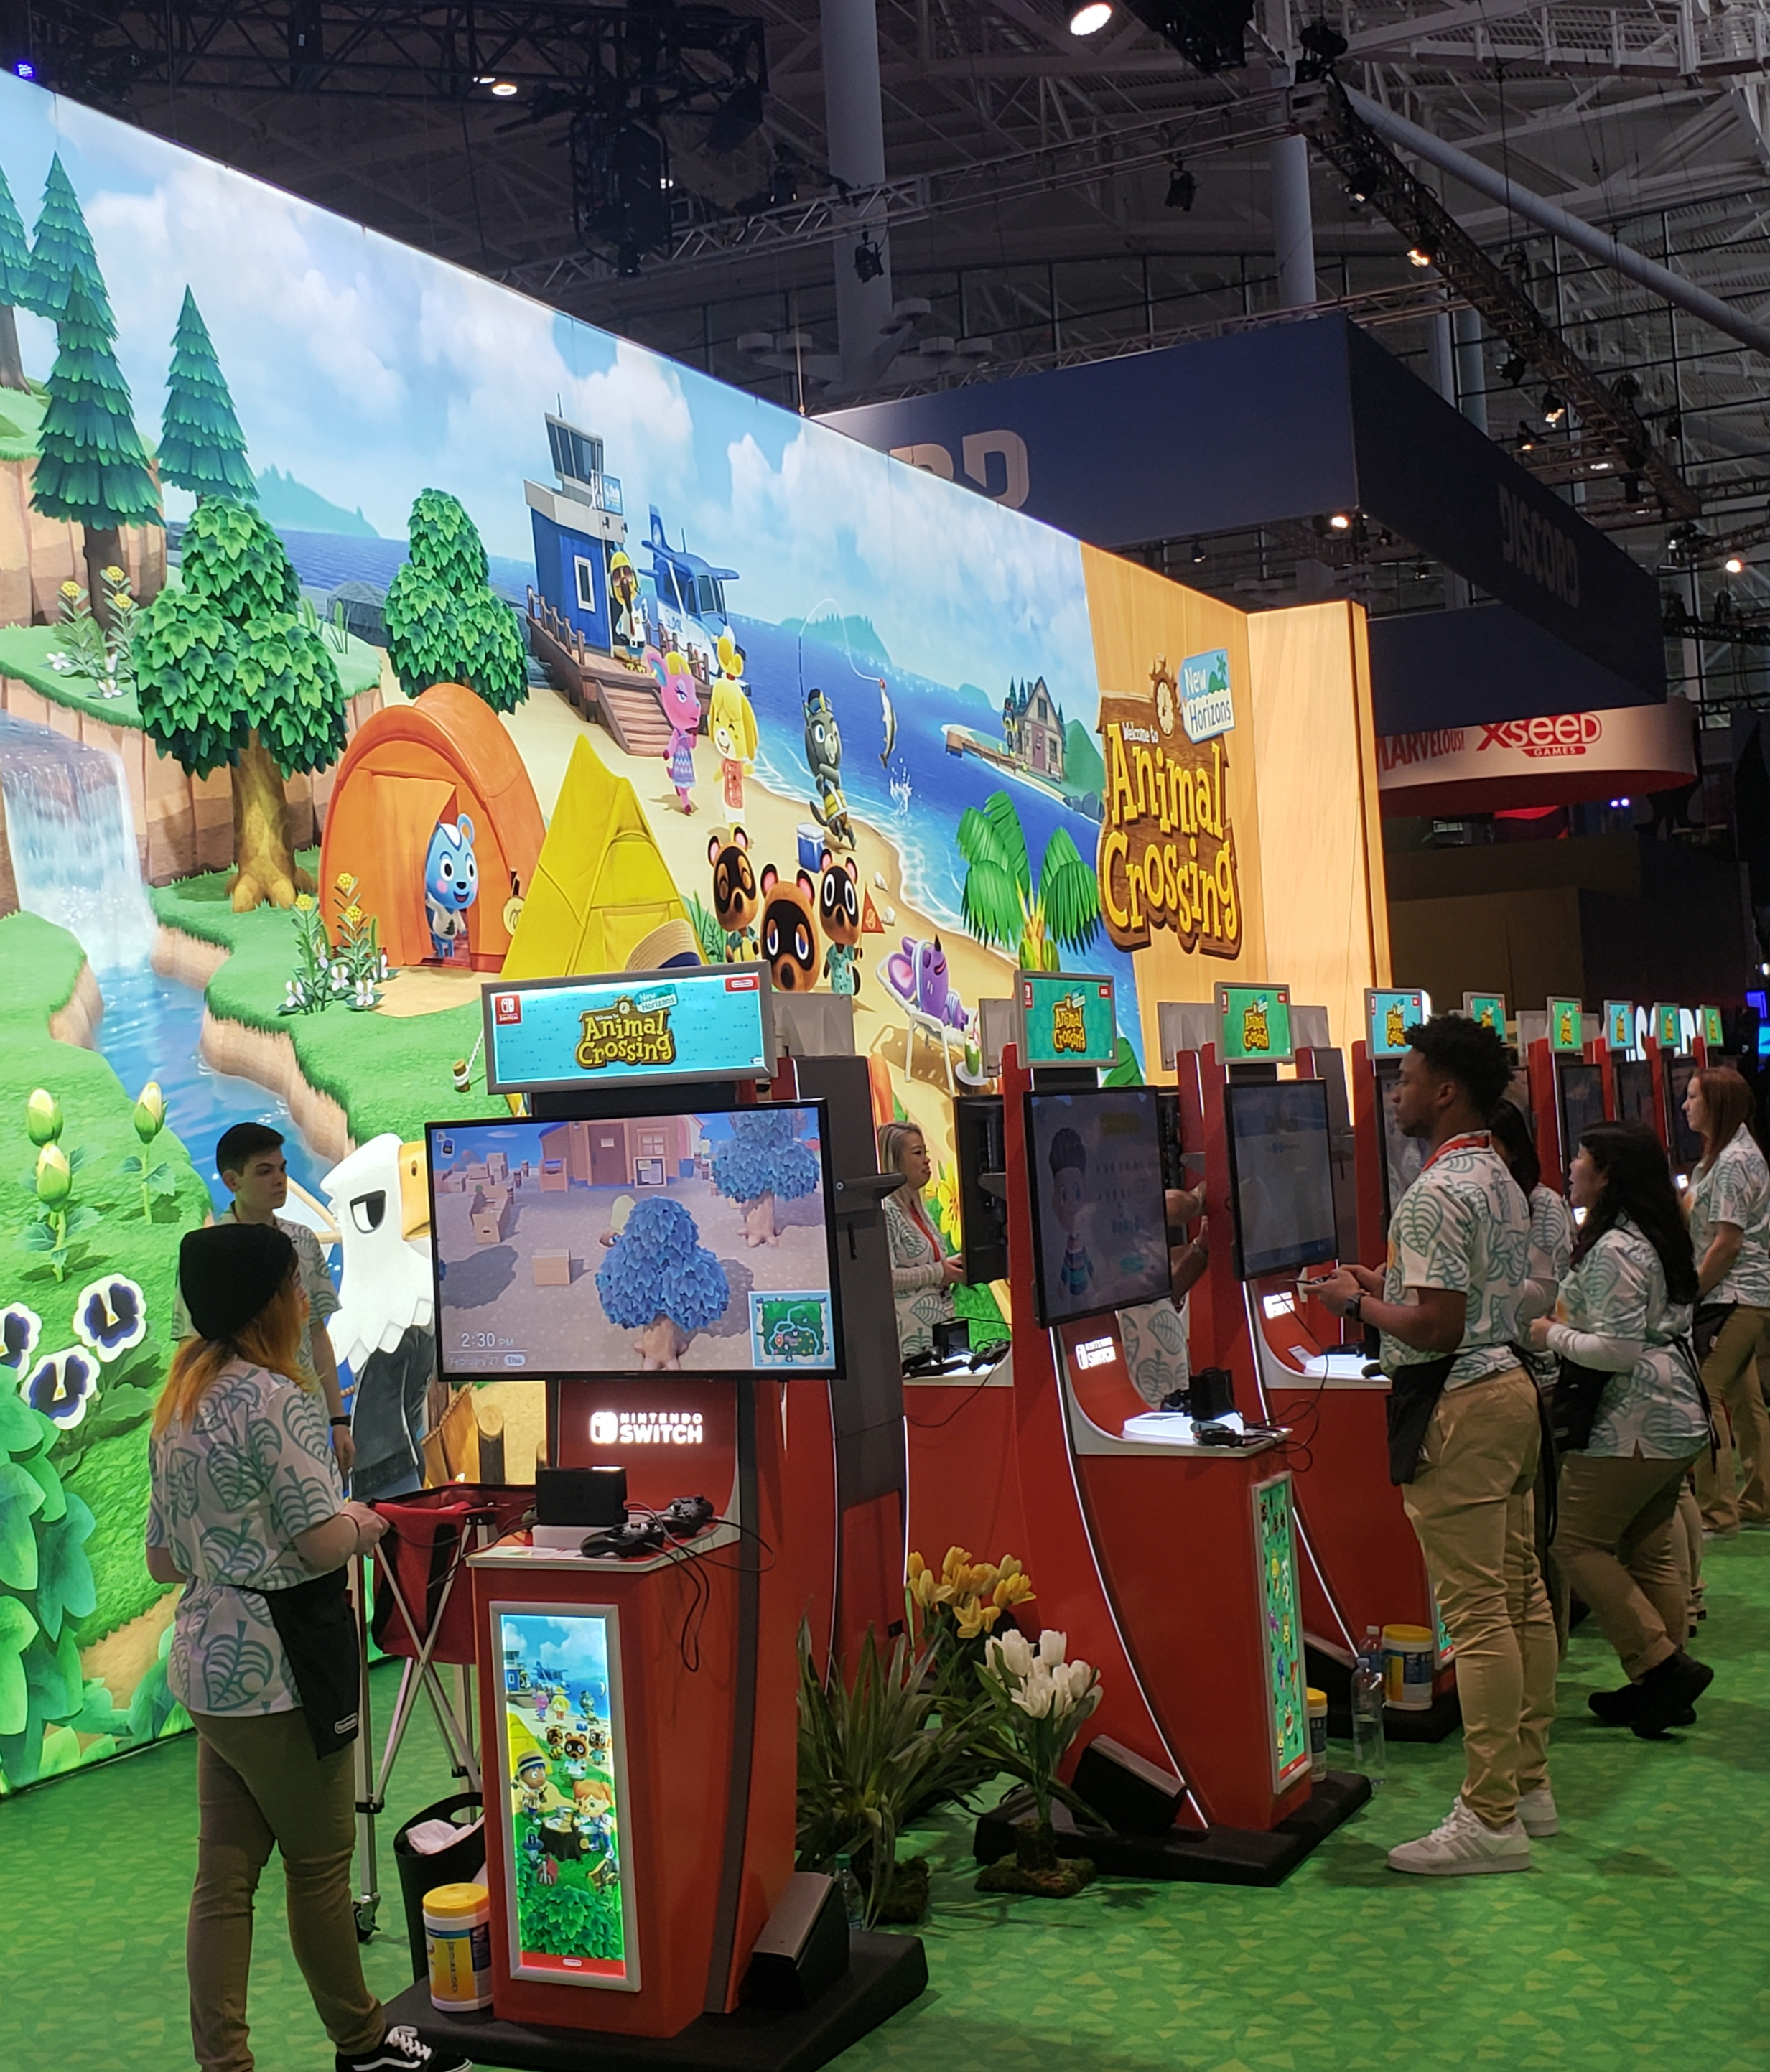 Animal Crossing Booth at PAX East 2020